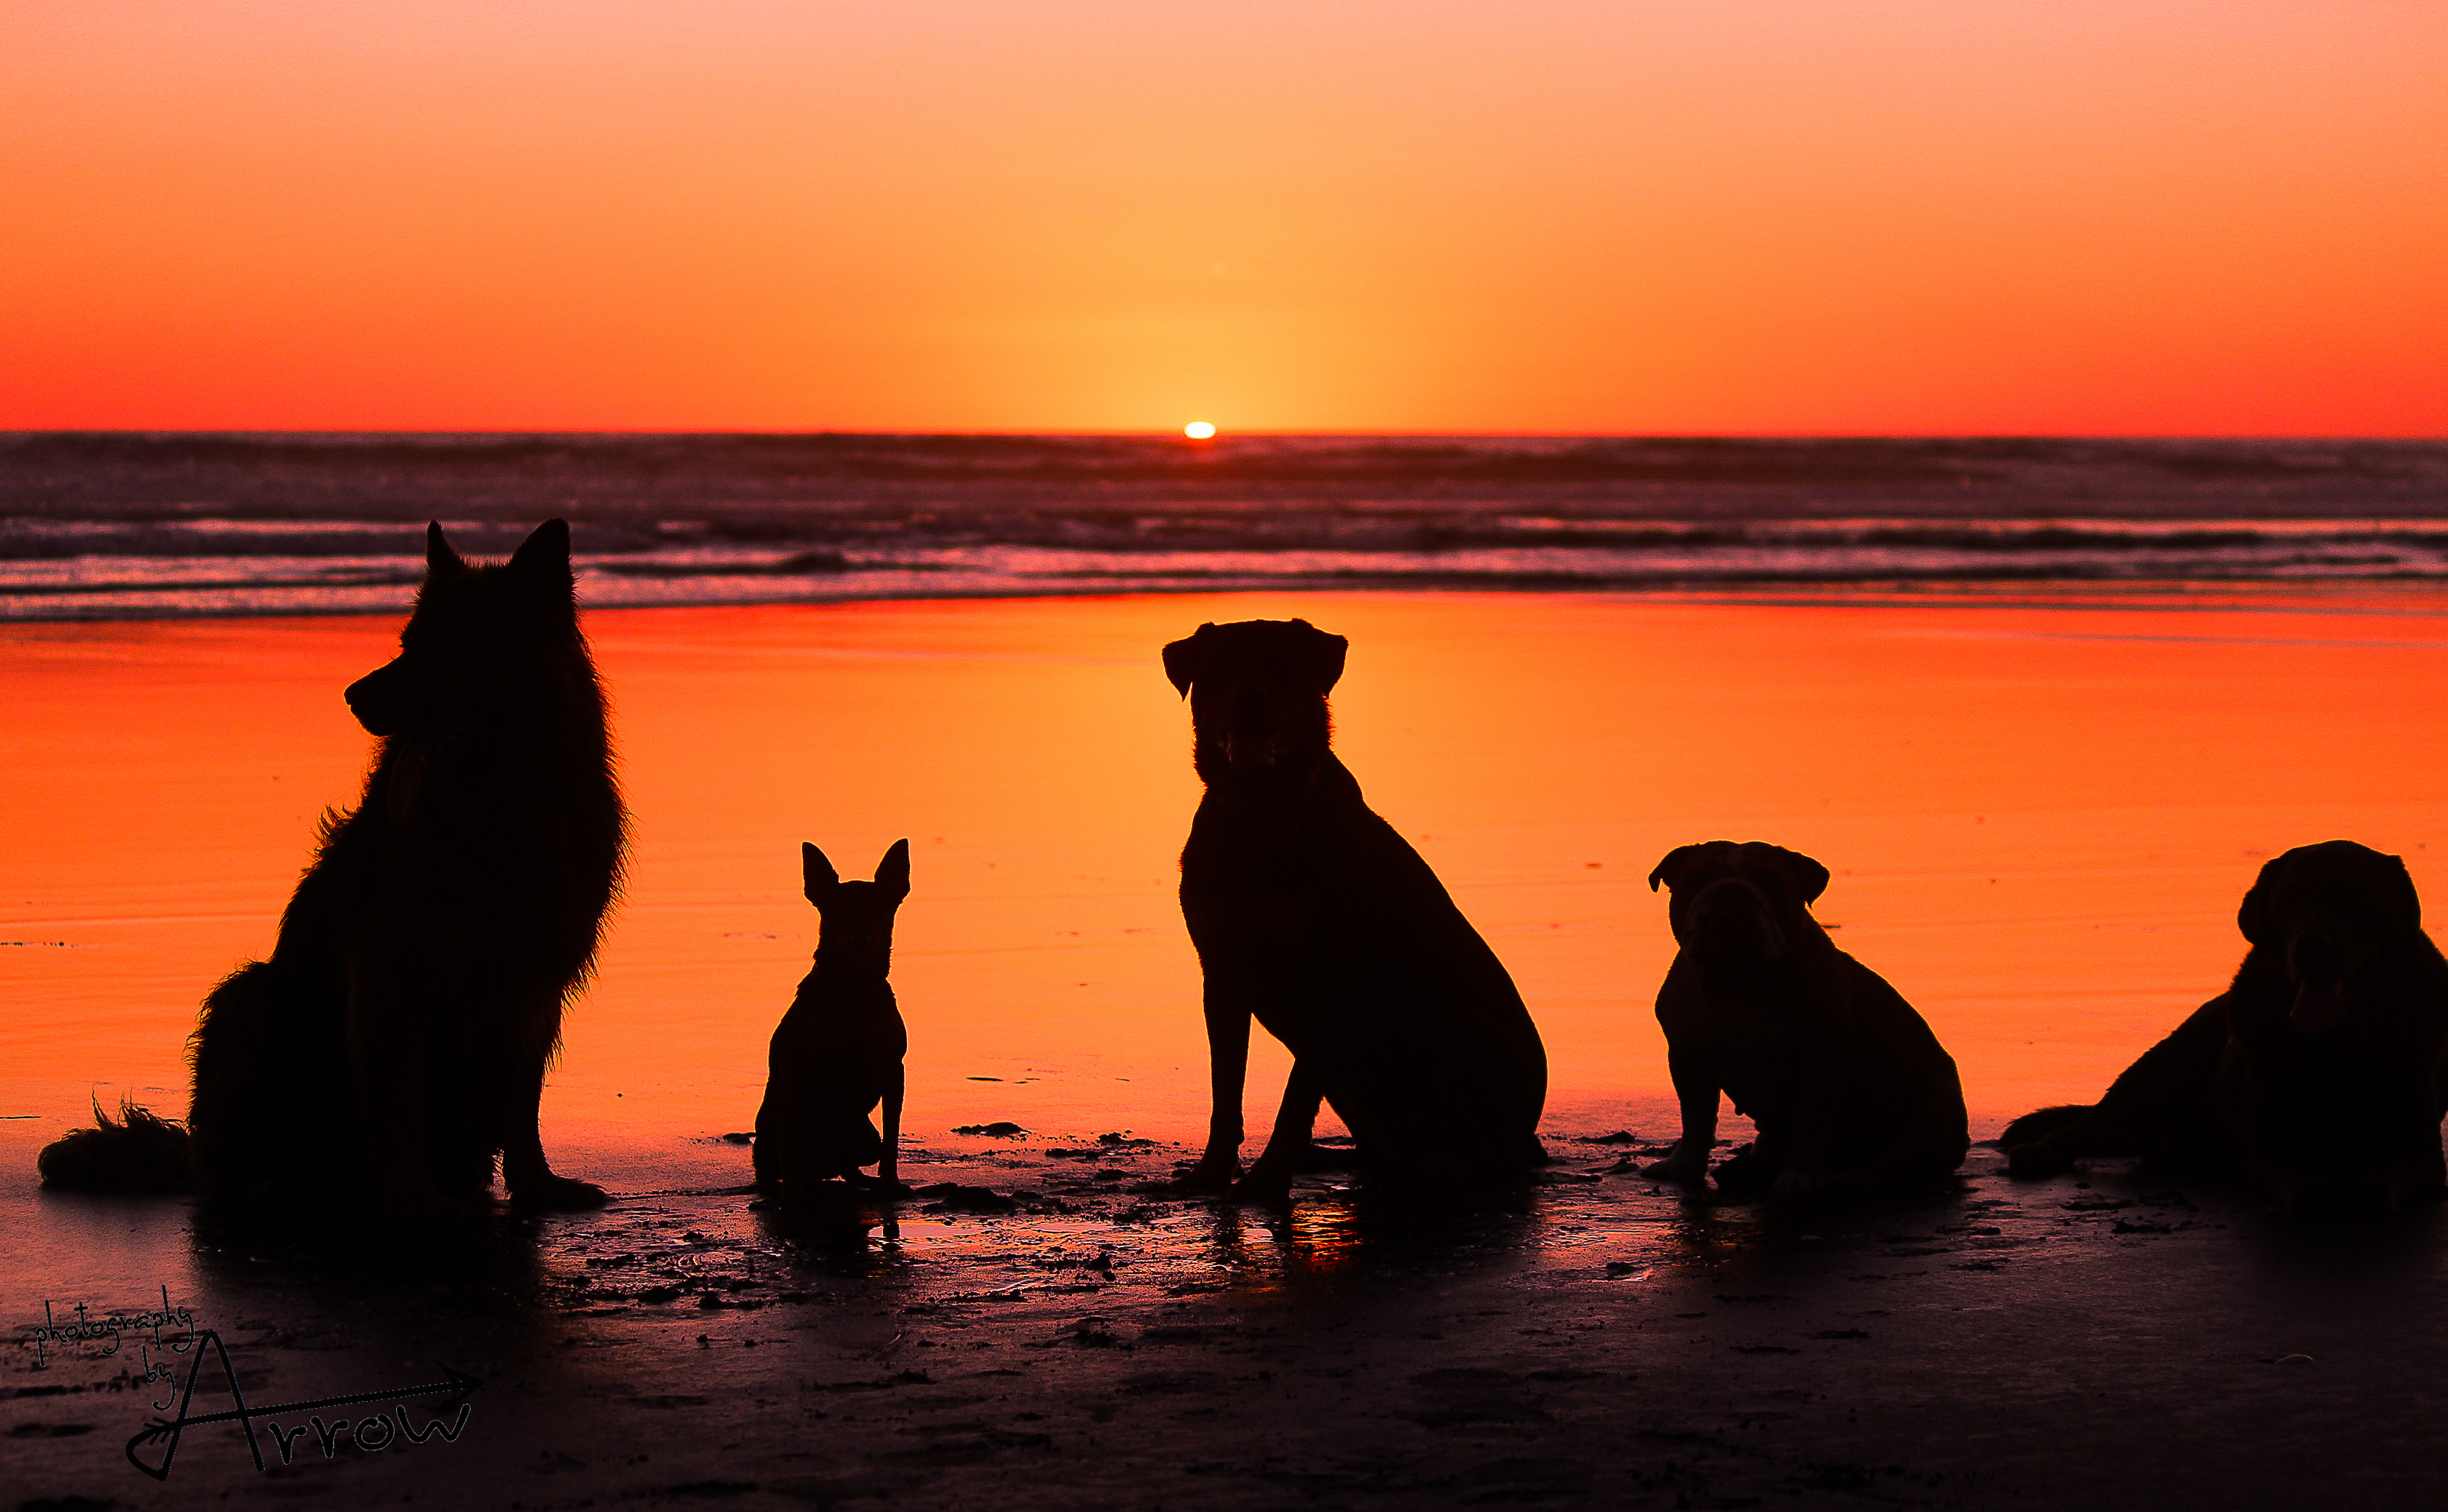 Beach sunset silhouette of 5 dogs